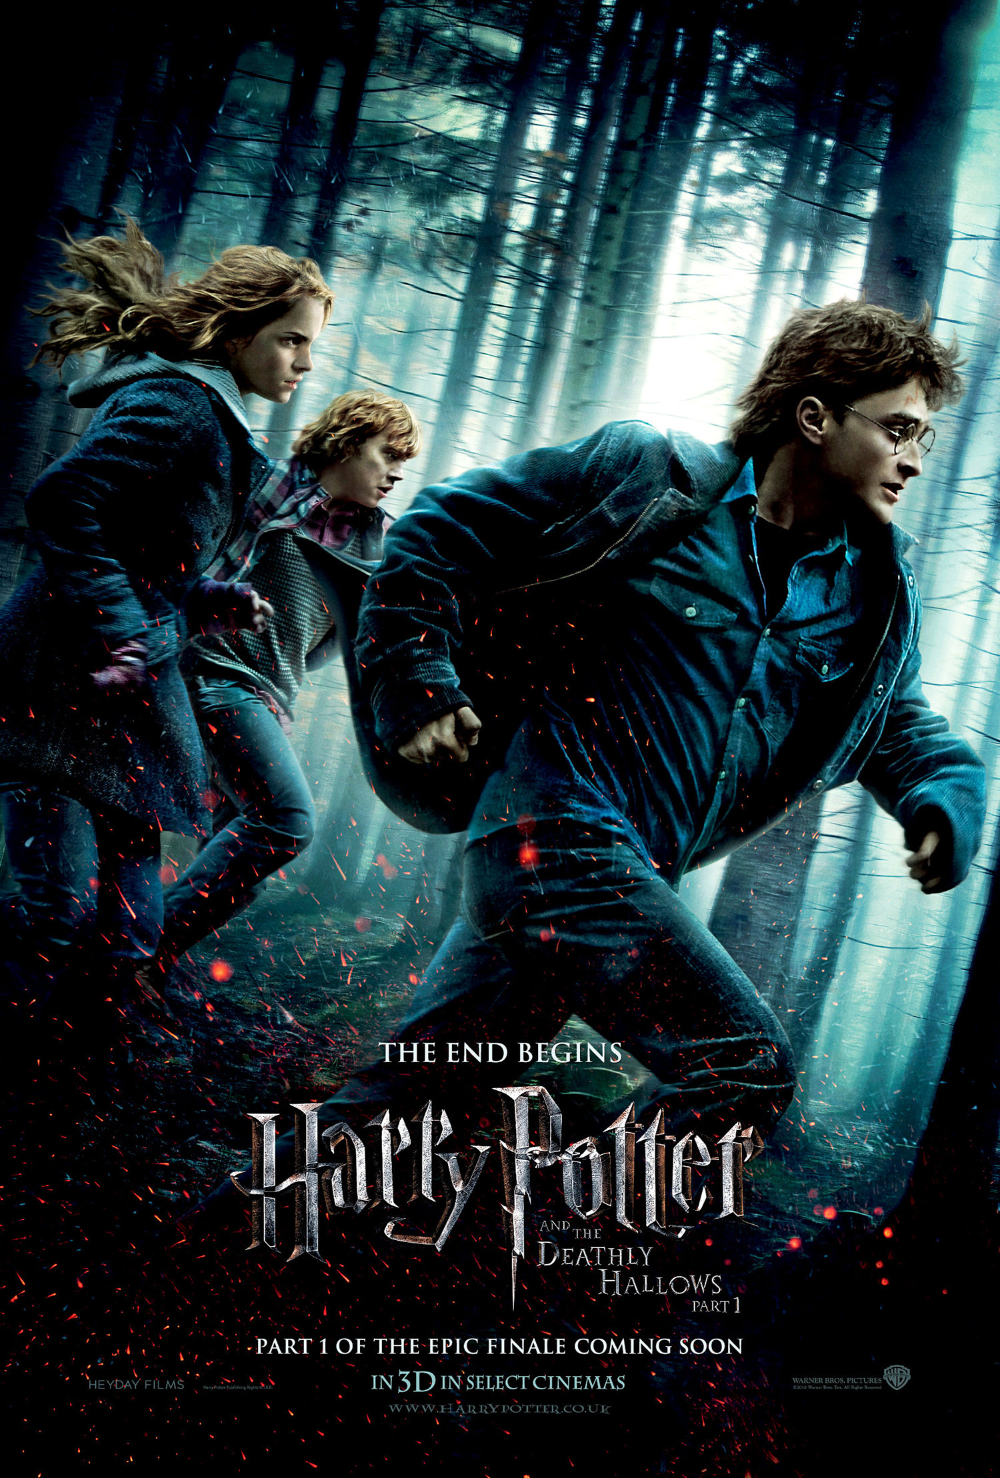 Deathly Hallows Part 1 Theatrical Poster Harry Potter Fan Zone In 2020 Harry Potter Movie Posters Deathly Hallows Movie Deathly Hallows Part 1